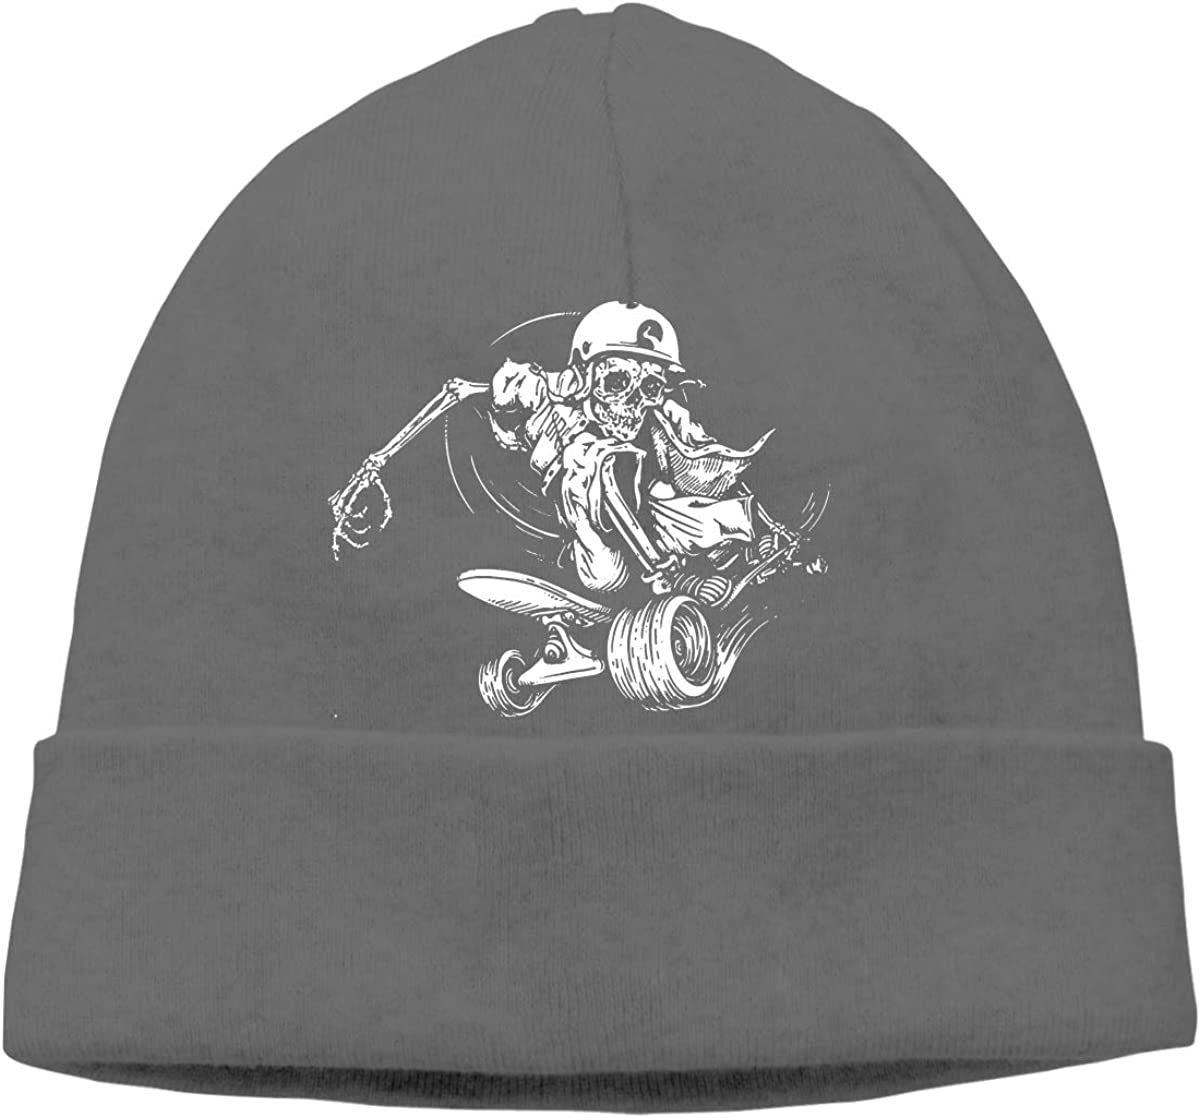 Art Skull Skateboarding Unisex Cuffed Plain Skull Knitted Hat Beanie Cap Men Women Black